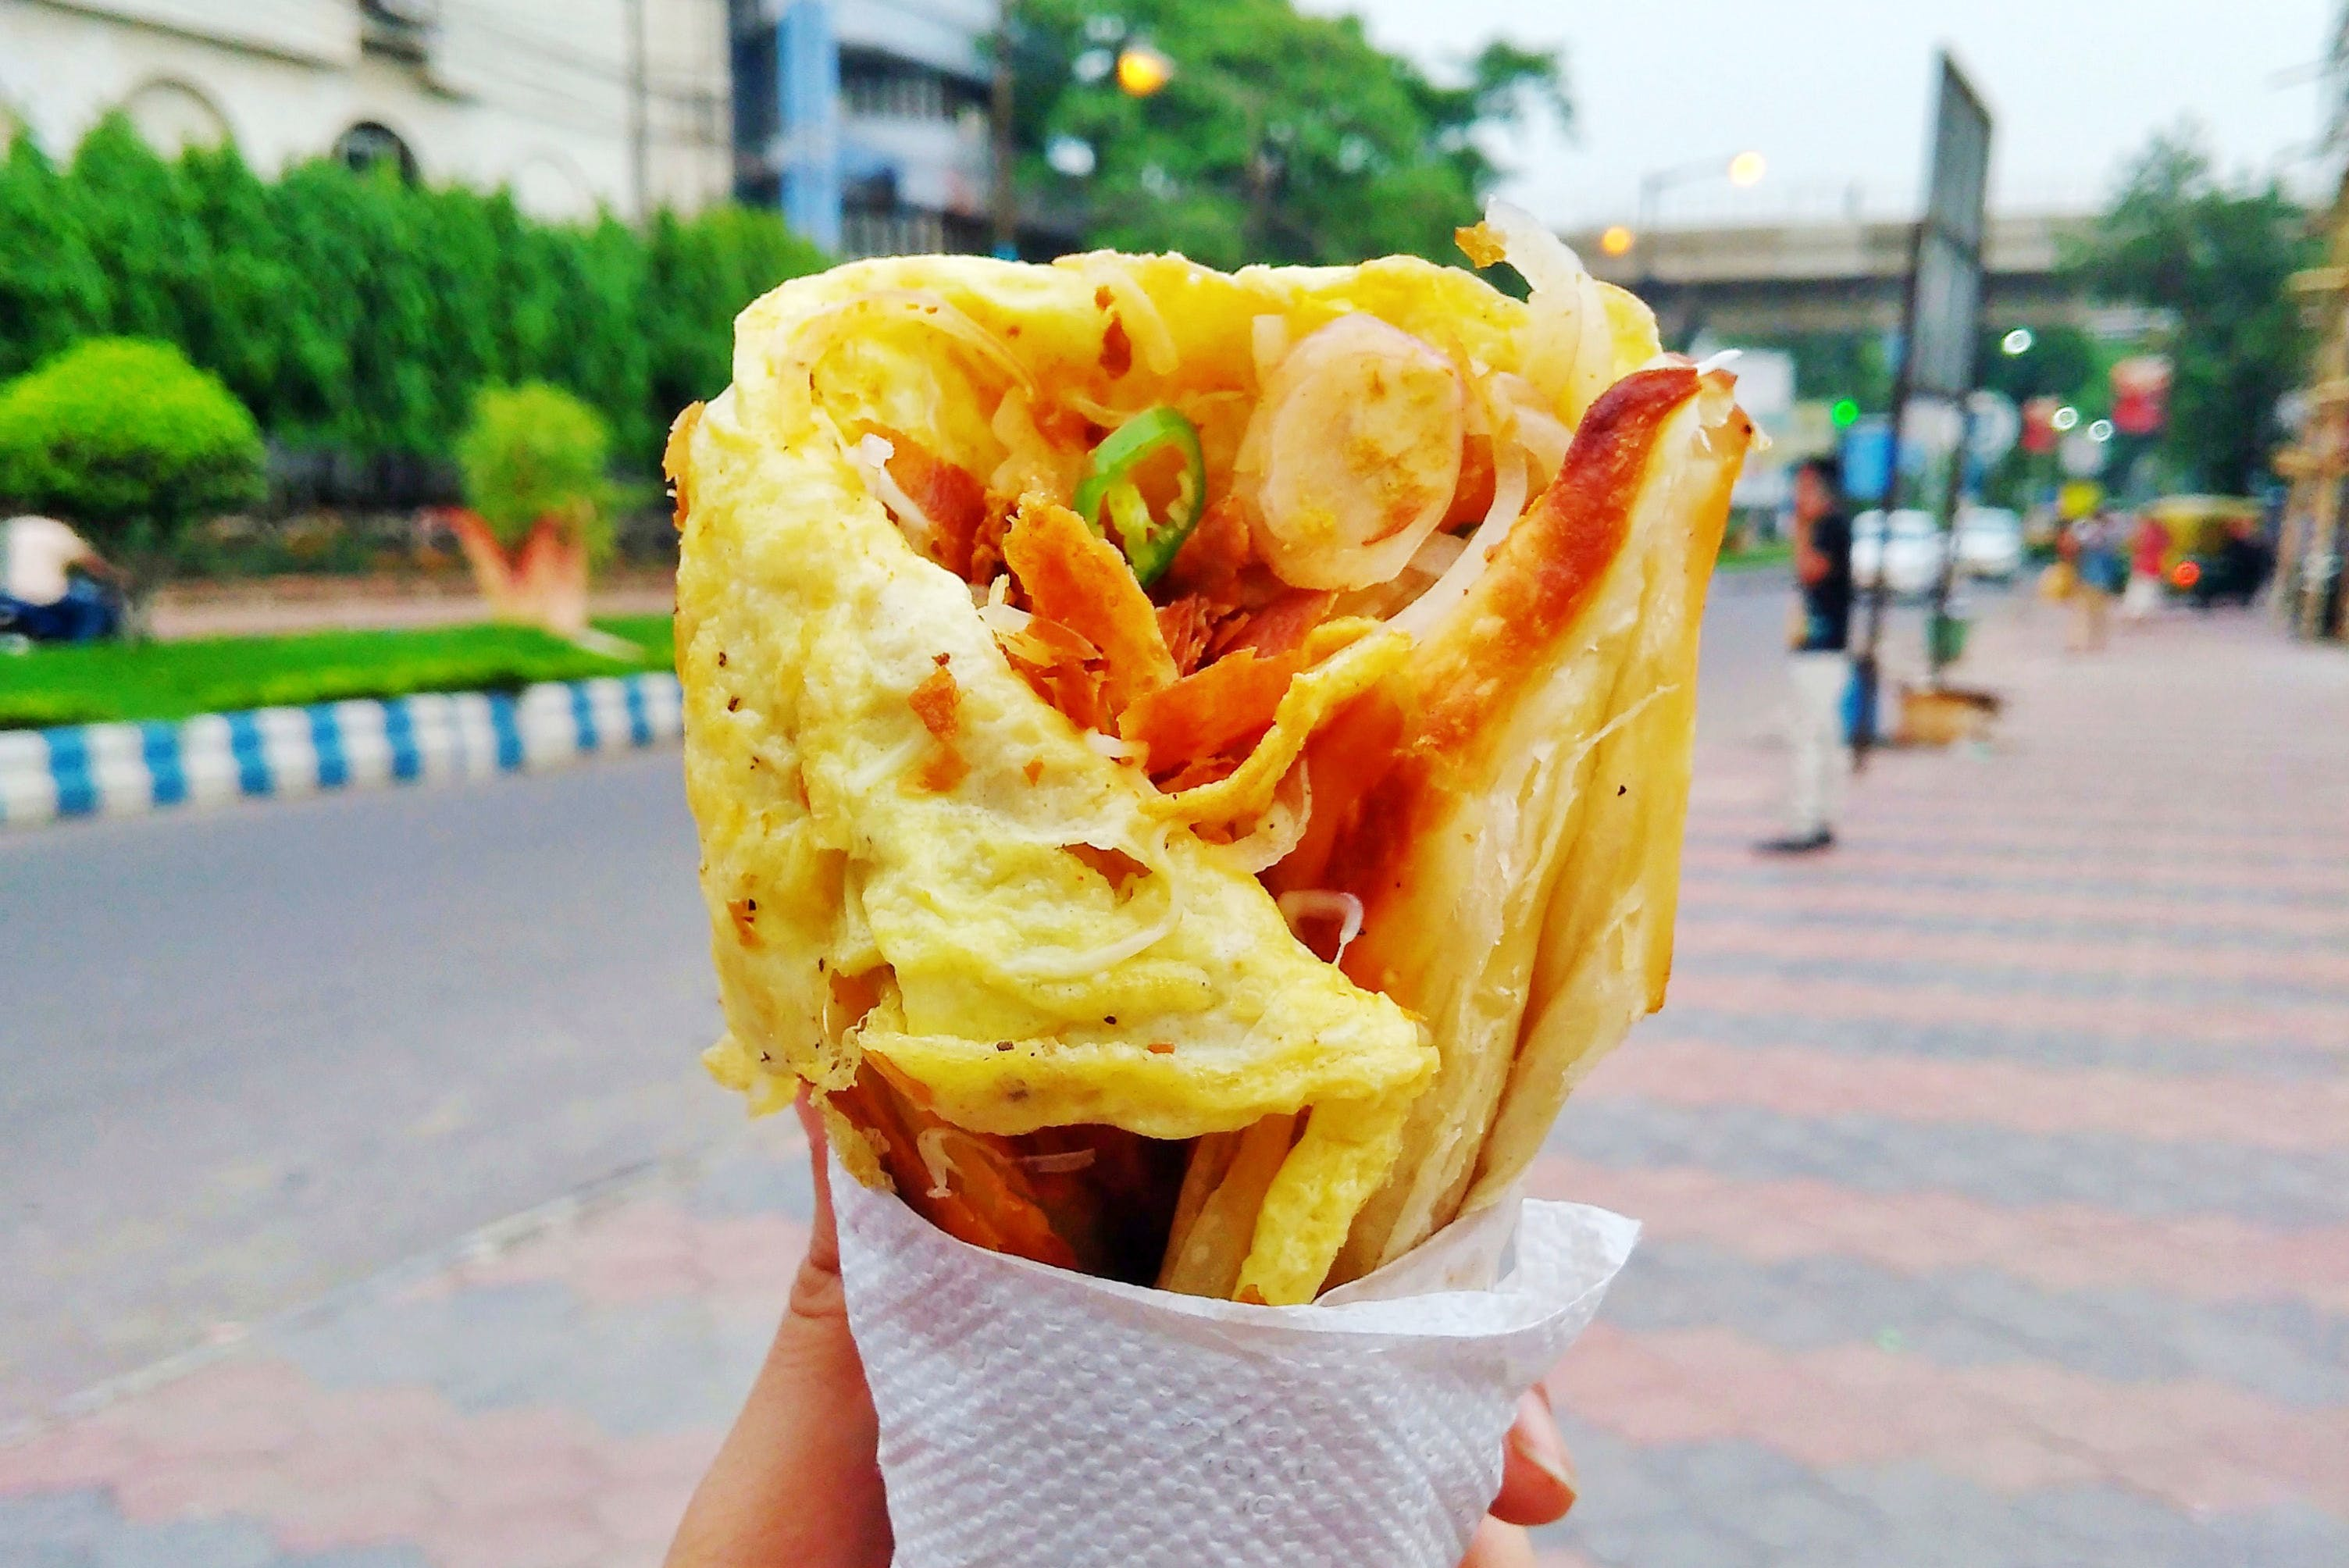 Paneer Cheese To Kali Mirch Kebabs: These 5 Places In Salt Lake Serve Delicious Rolls